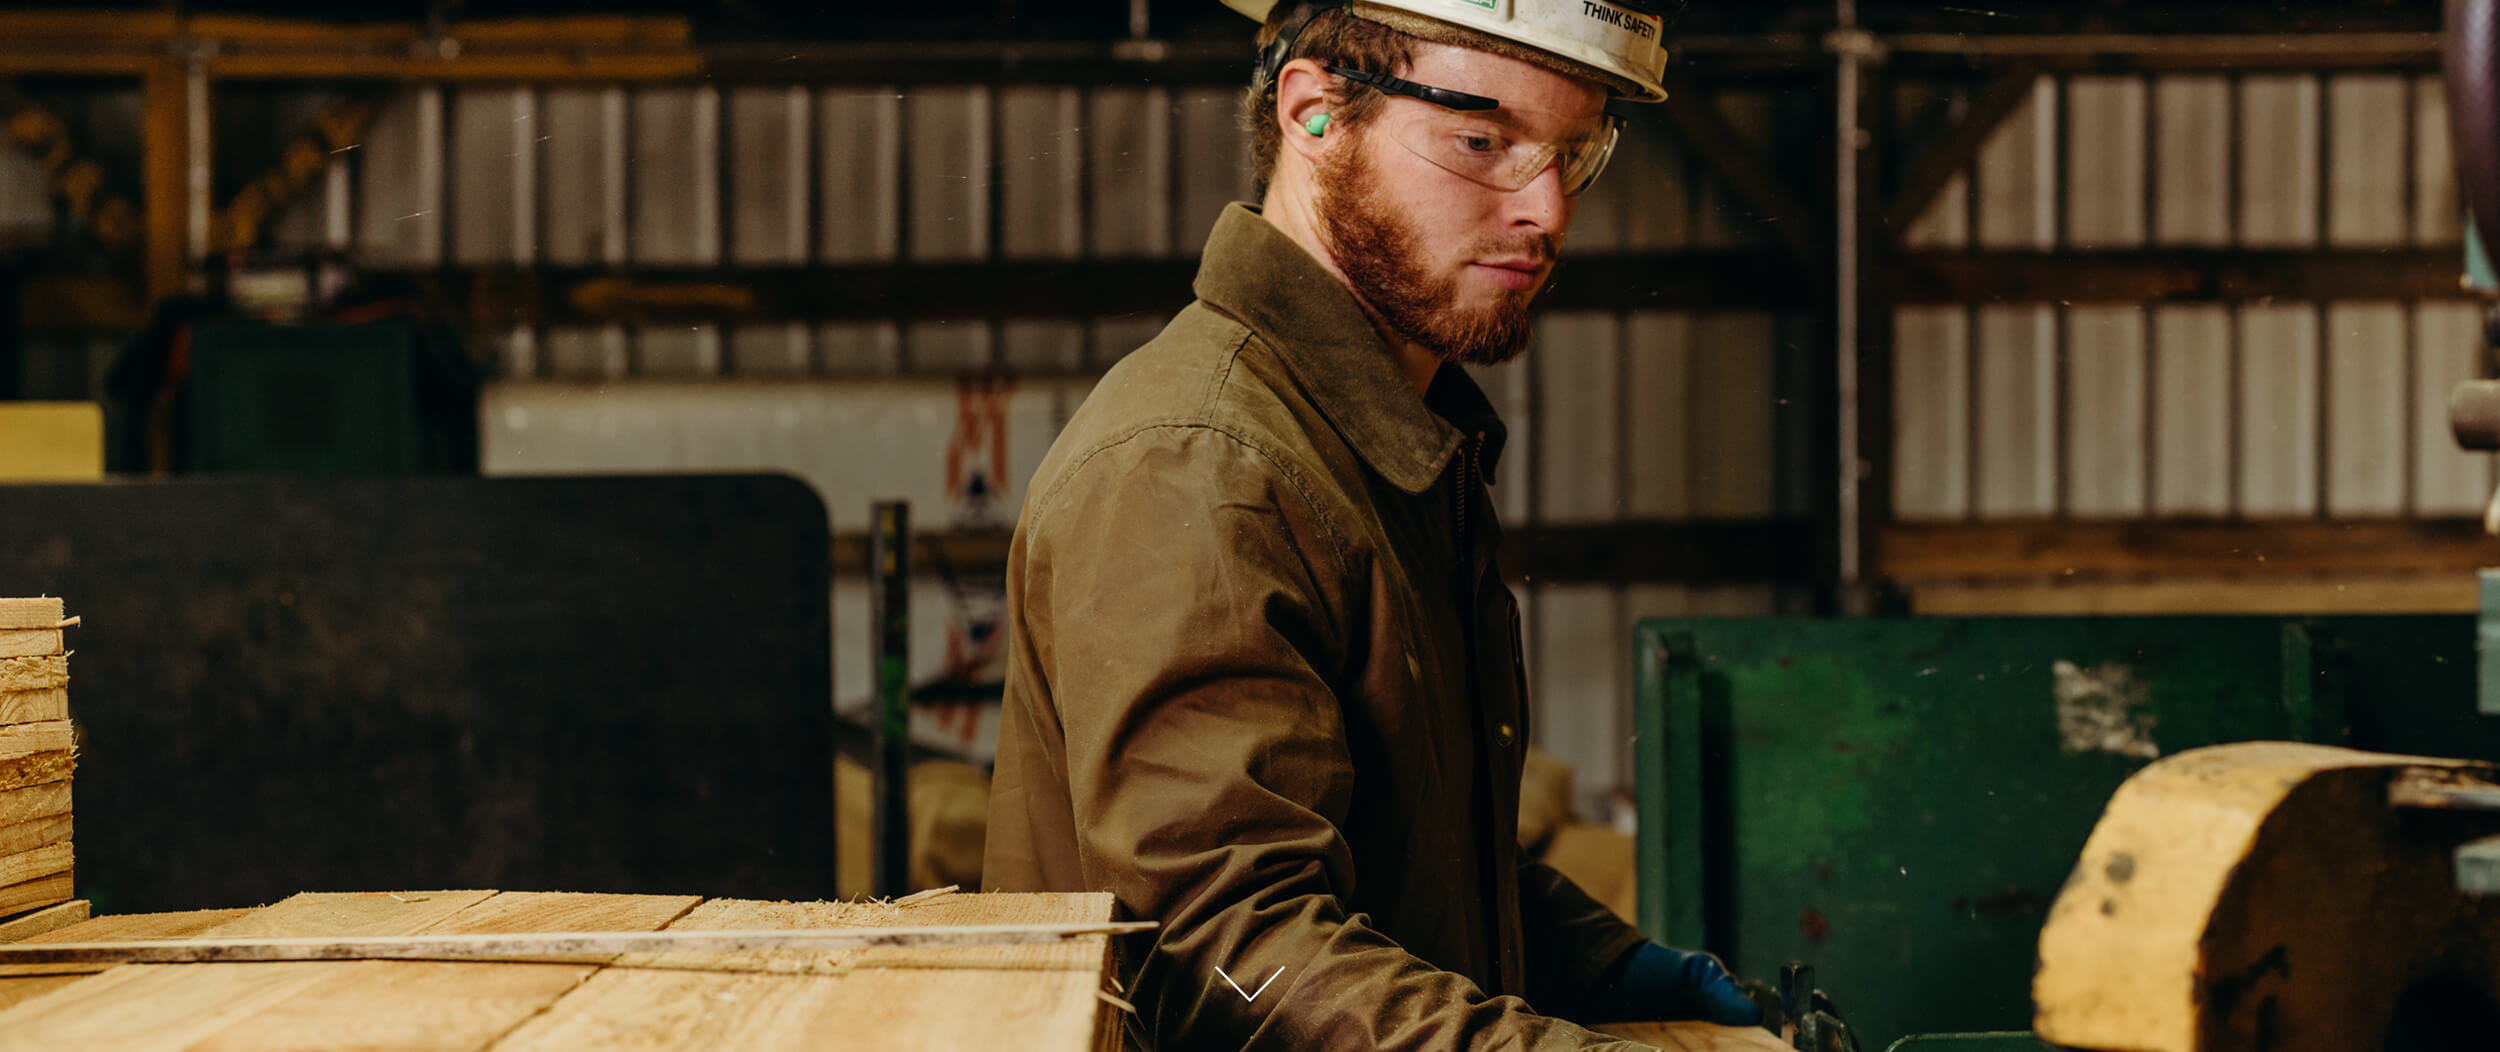 PEOPLE AND CAREERS - Behind every fence we build stands a team of dedicated people. Alta employs a team of over 400 individuals in four locations. From our senior leadership to our sawmill operators, Alta is a people-first organization. We are committed to helping our company and each other perform to our fullest potential.